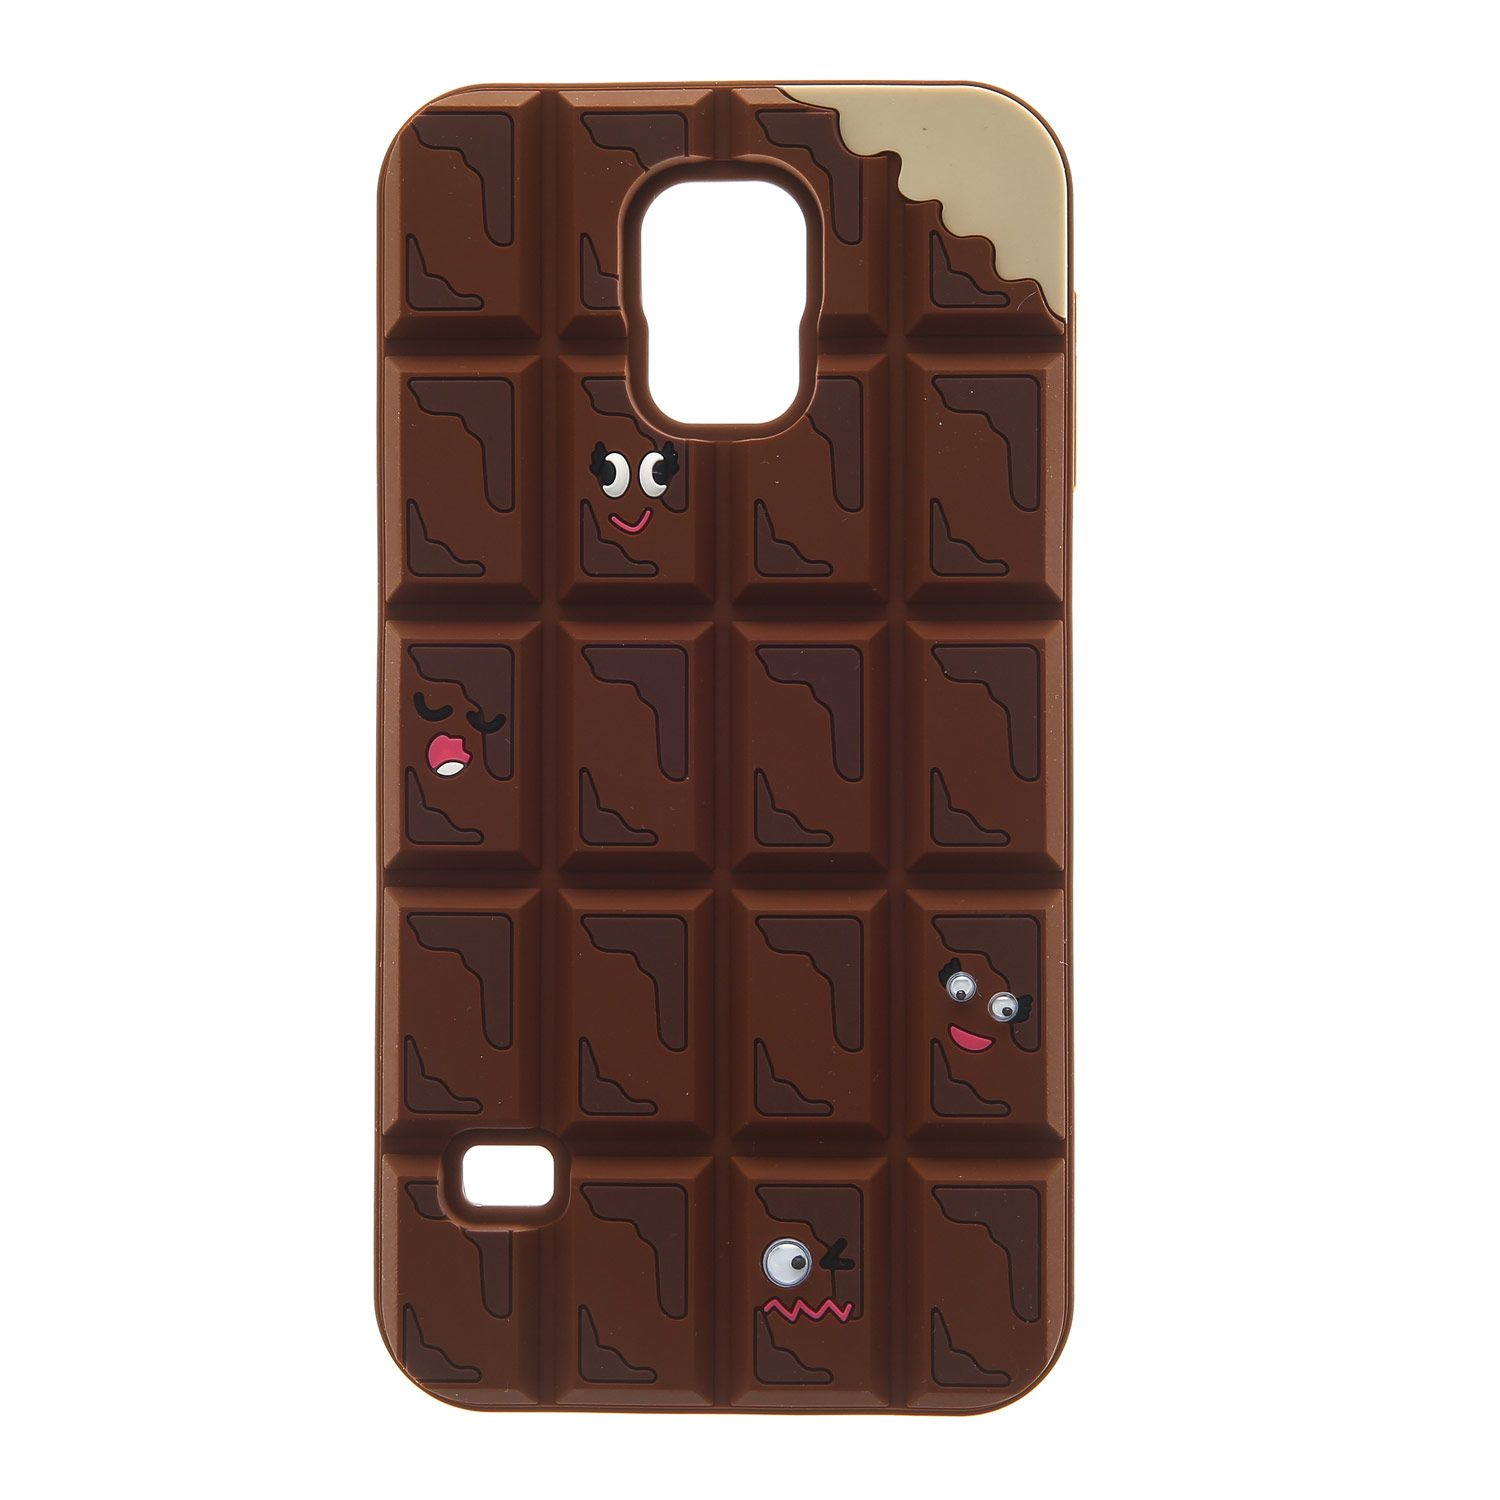 claire's chocolate phone case - Google Search | iphone covers ...